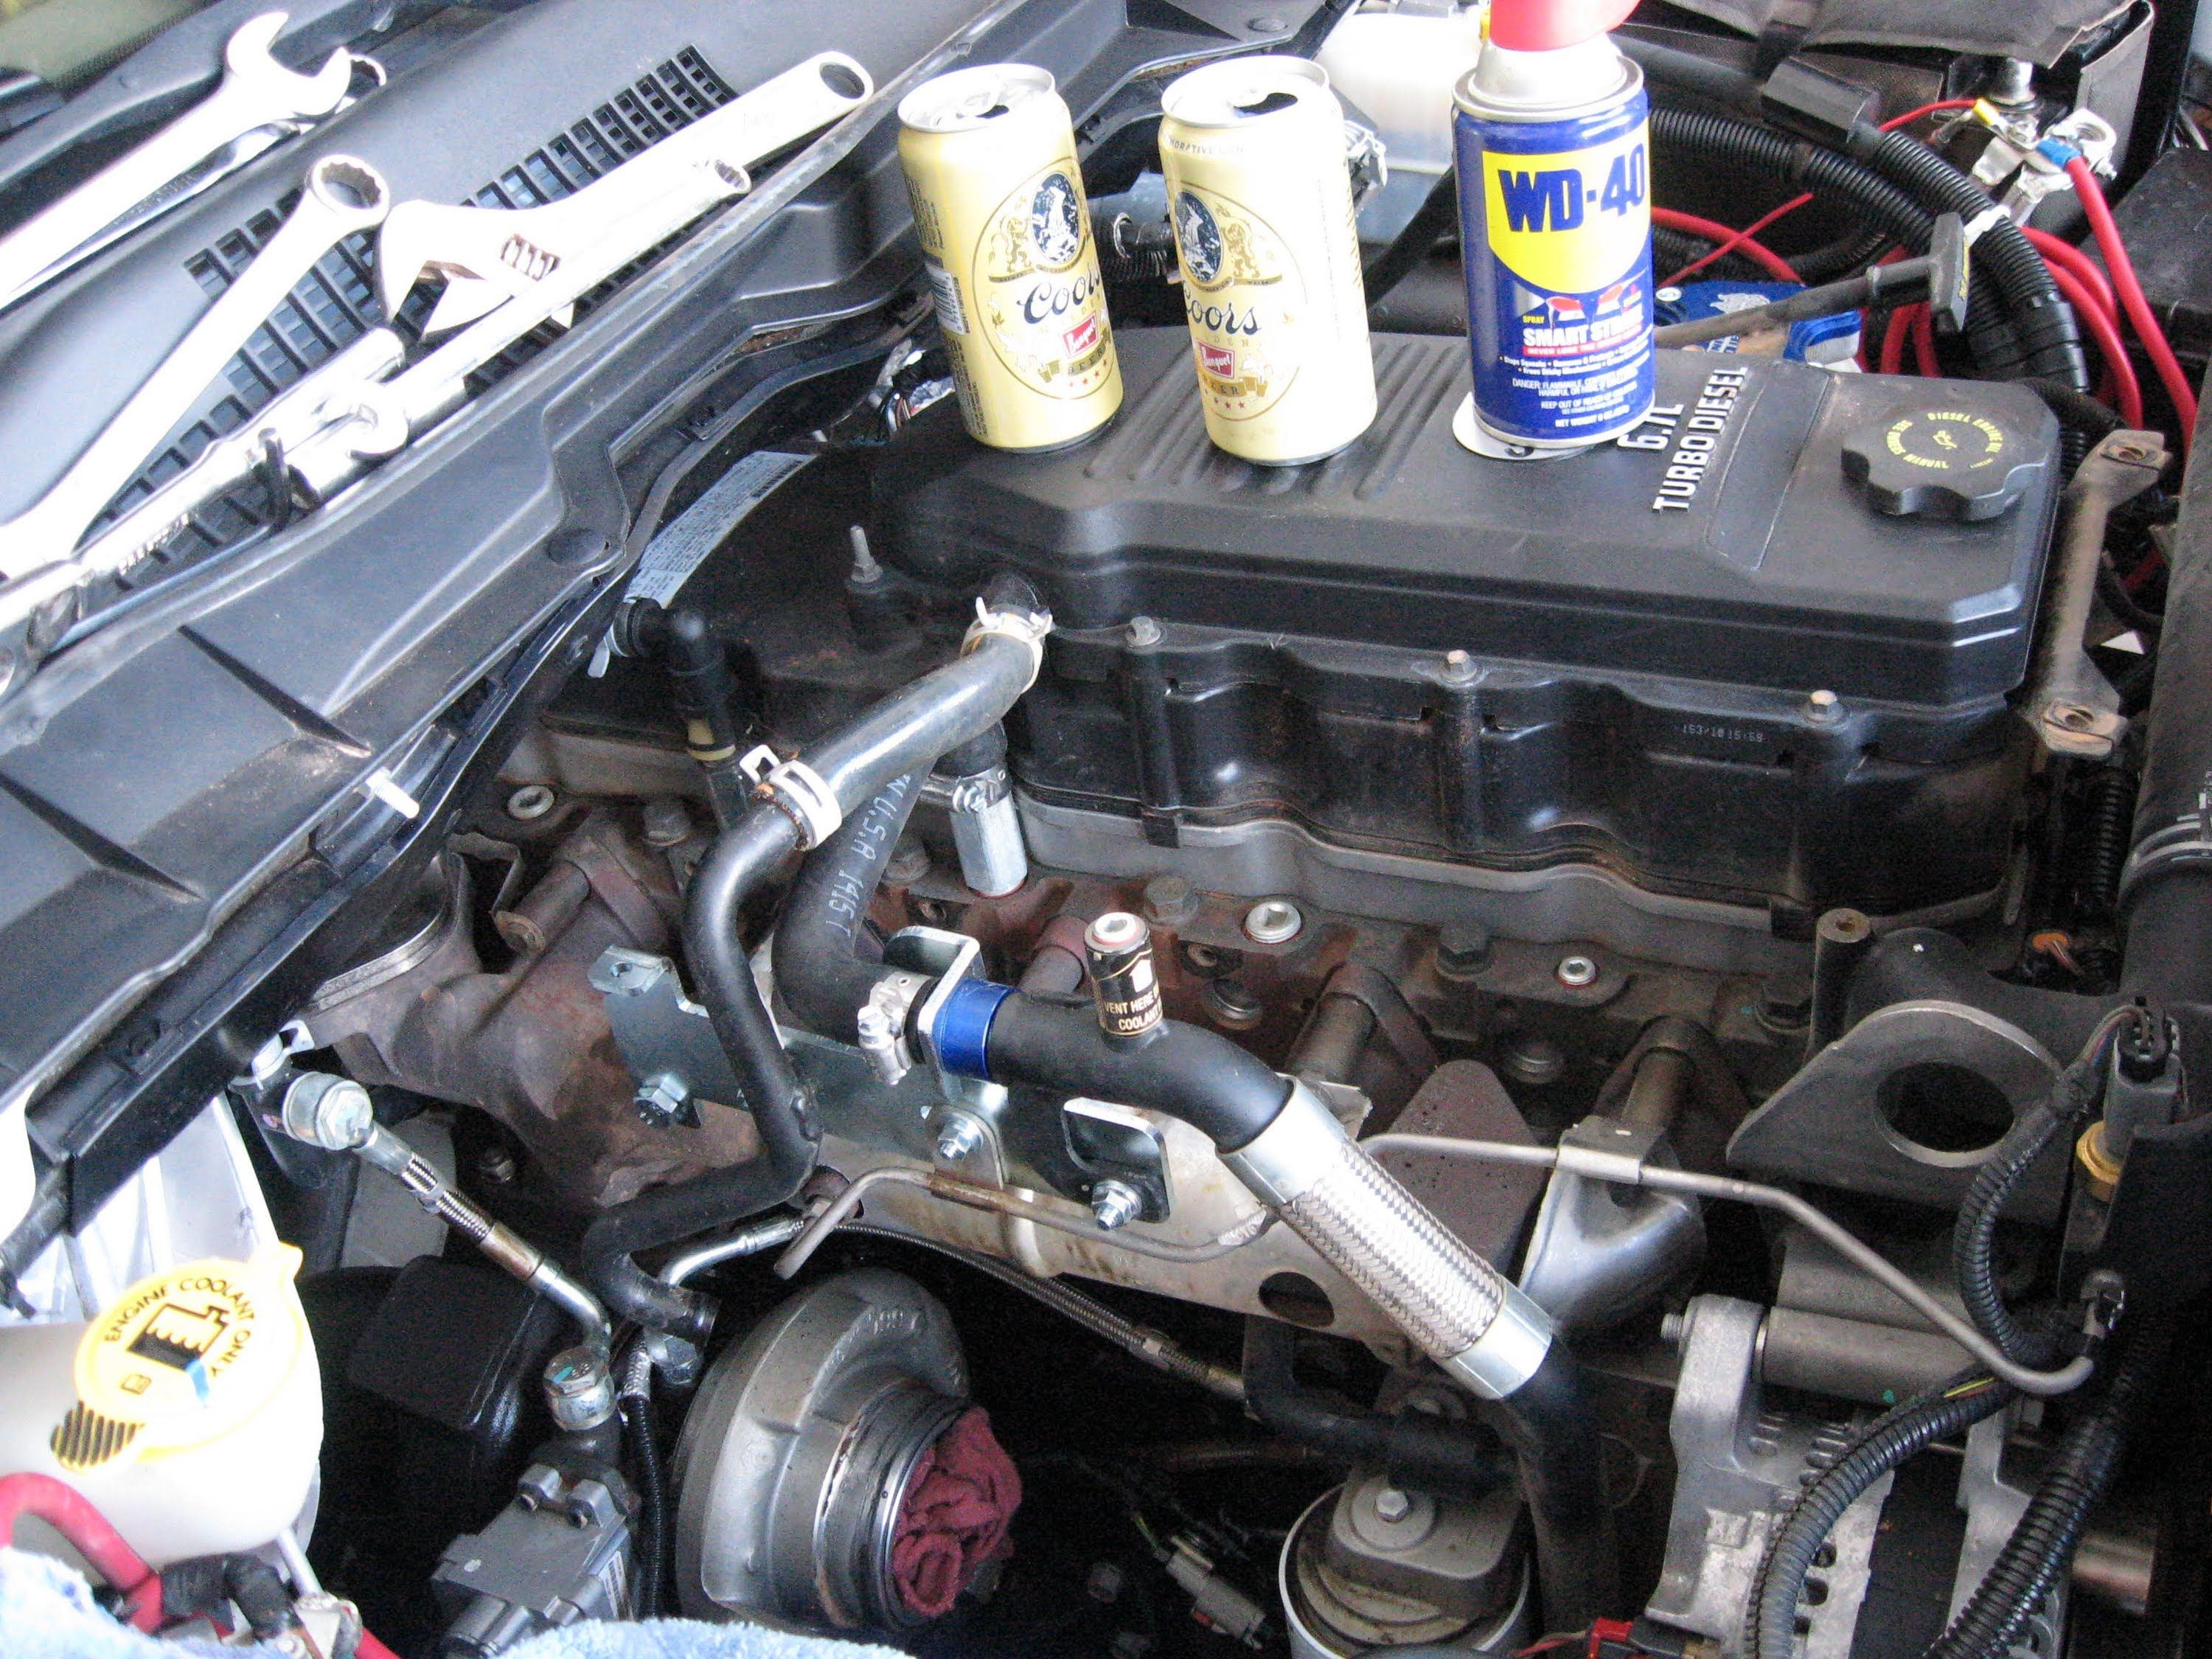 24v cummins diesel thermostat replacement and coolant system flush 24v cummins diesel thermostat replacement and coolant system flush by diesel pinterest cummins diesel and cummins fandeluxe Image collections